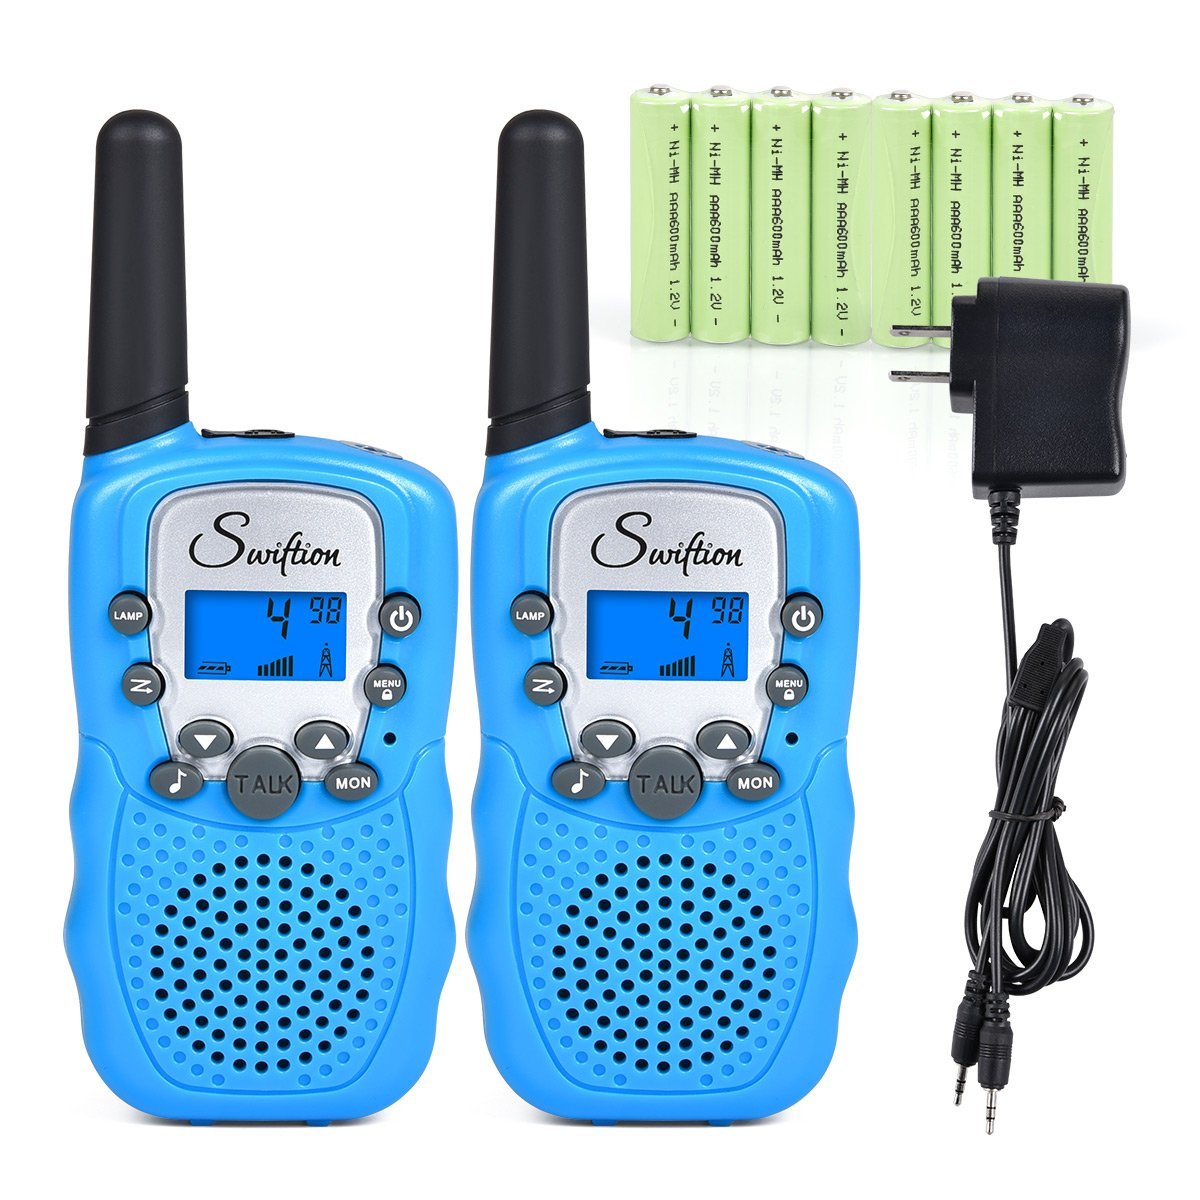 Swiftion Rechargeable Kids Walkie Talkies 22 Channel 0.5W FRS/GMRS 2 Way Radios with Charger and Rechargeable Batteries (Blue, Pack of 2)